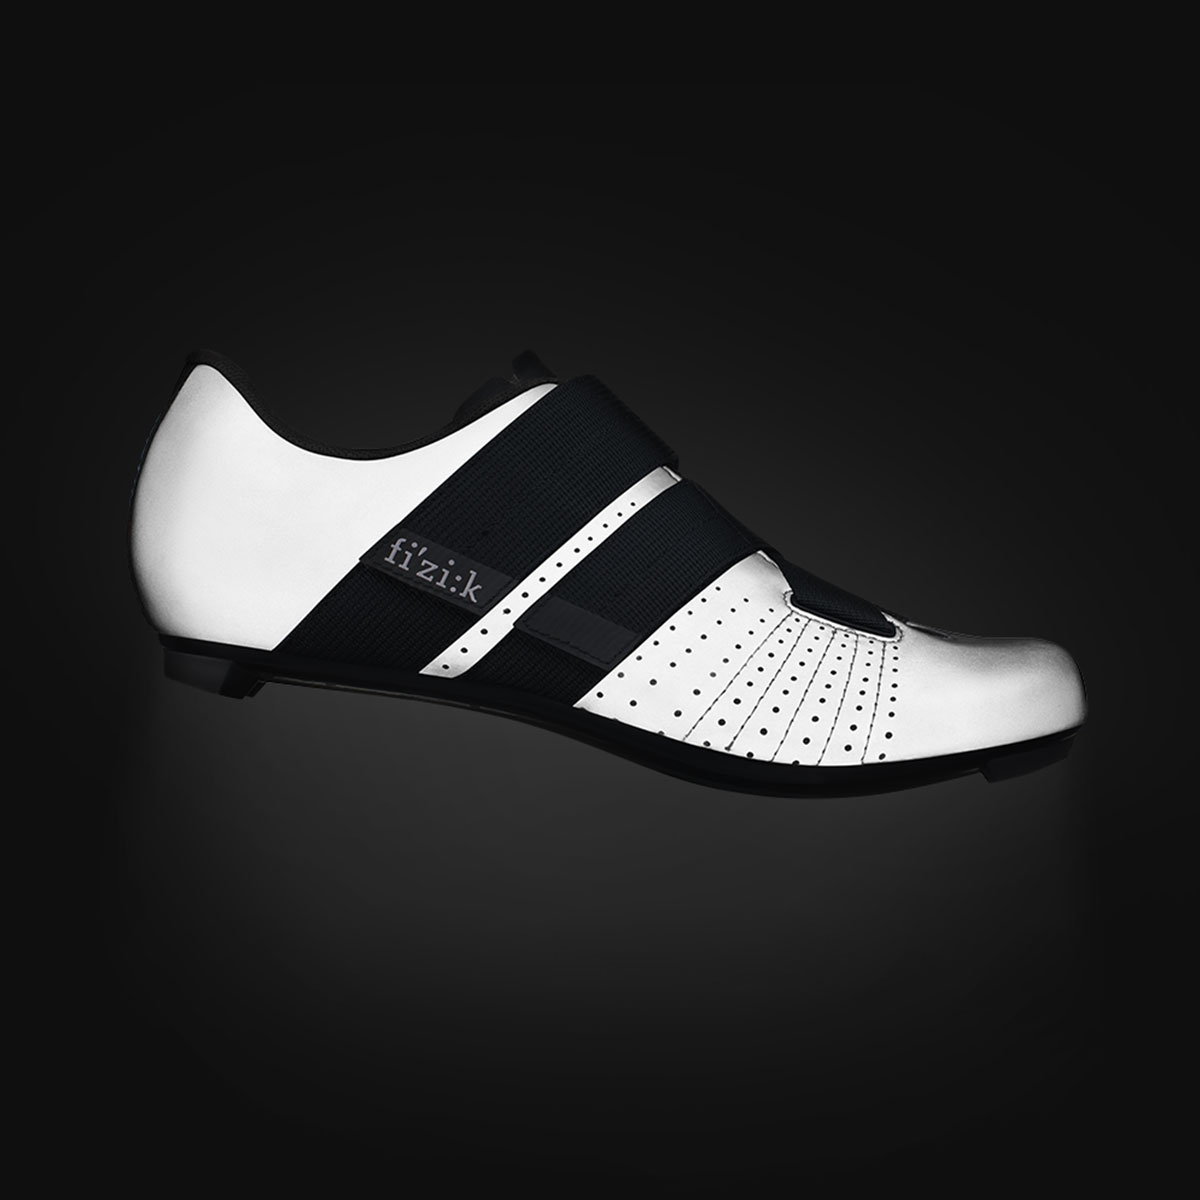 reflective-road-cycling-shoe-tempo-powerstrap-r5-fizik